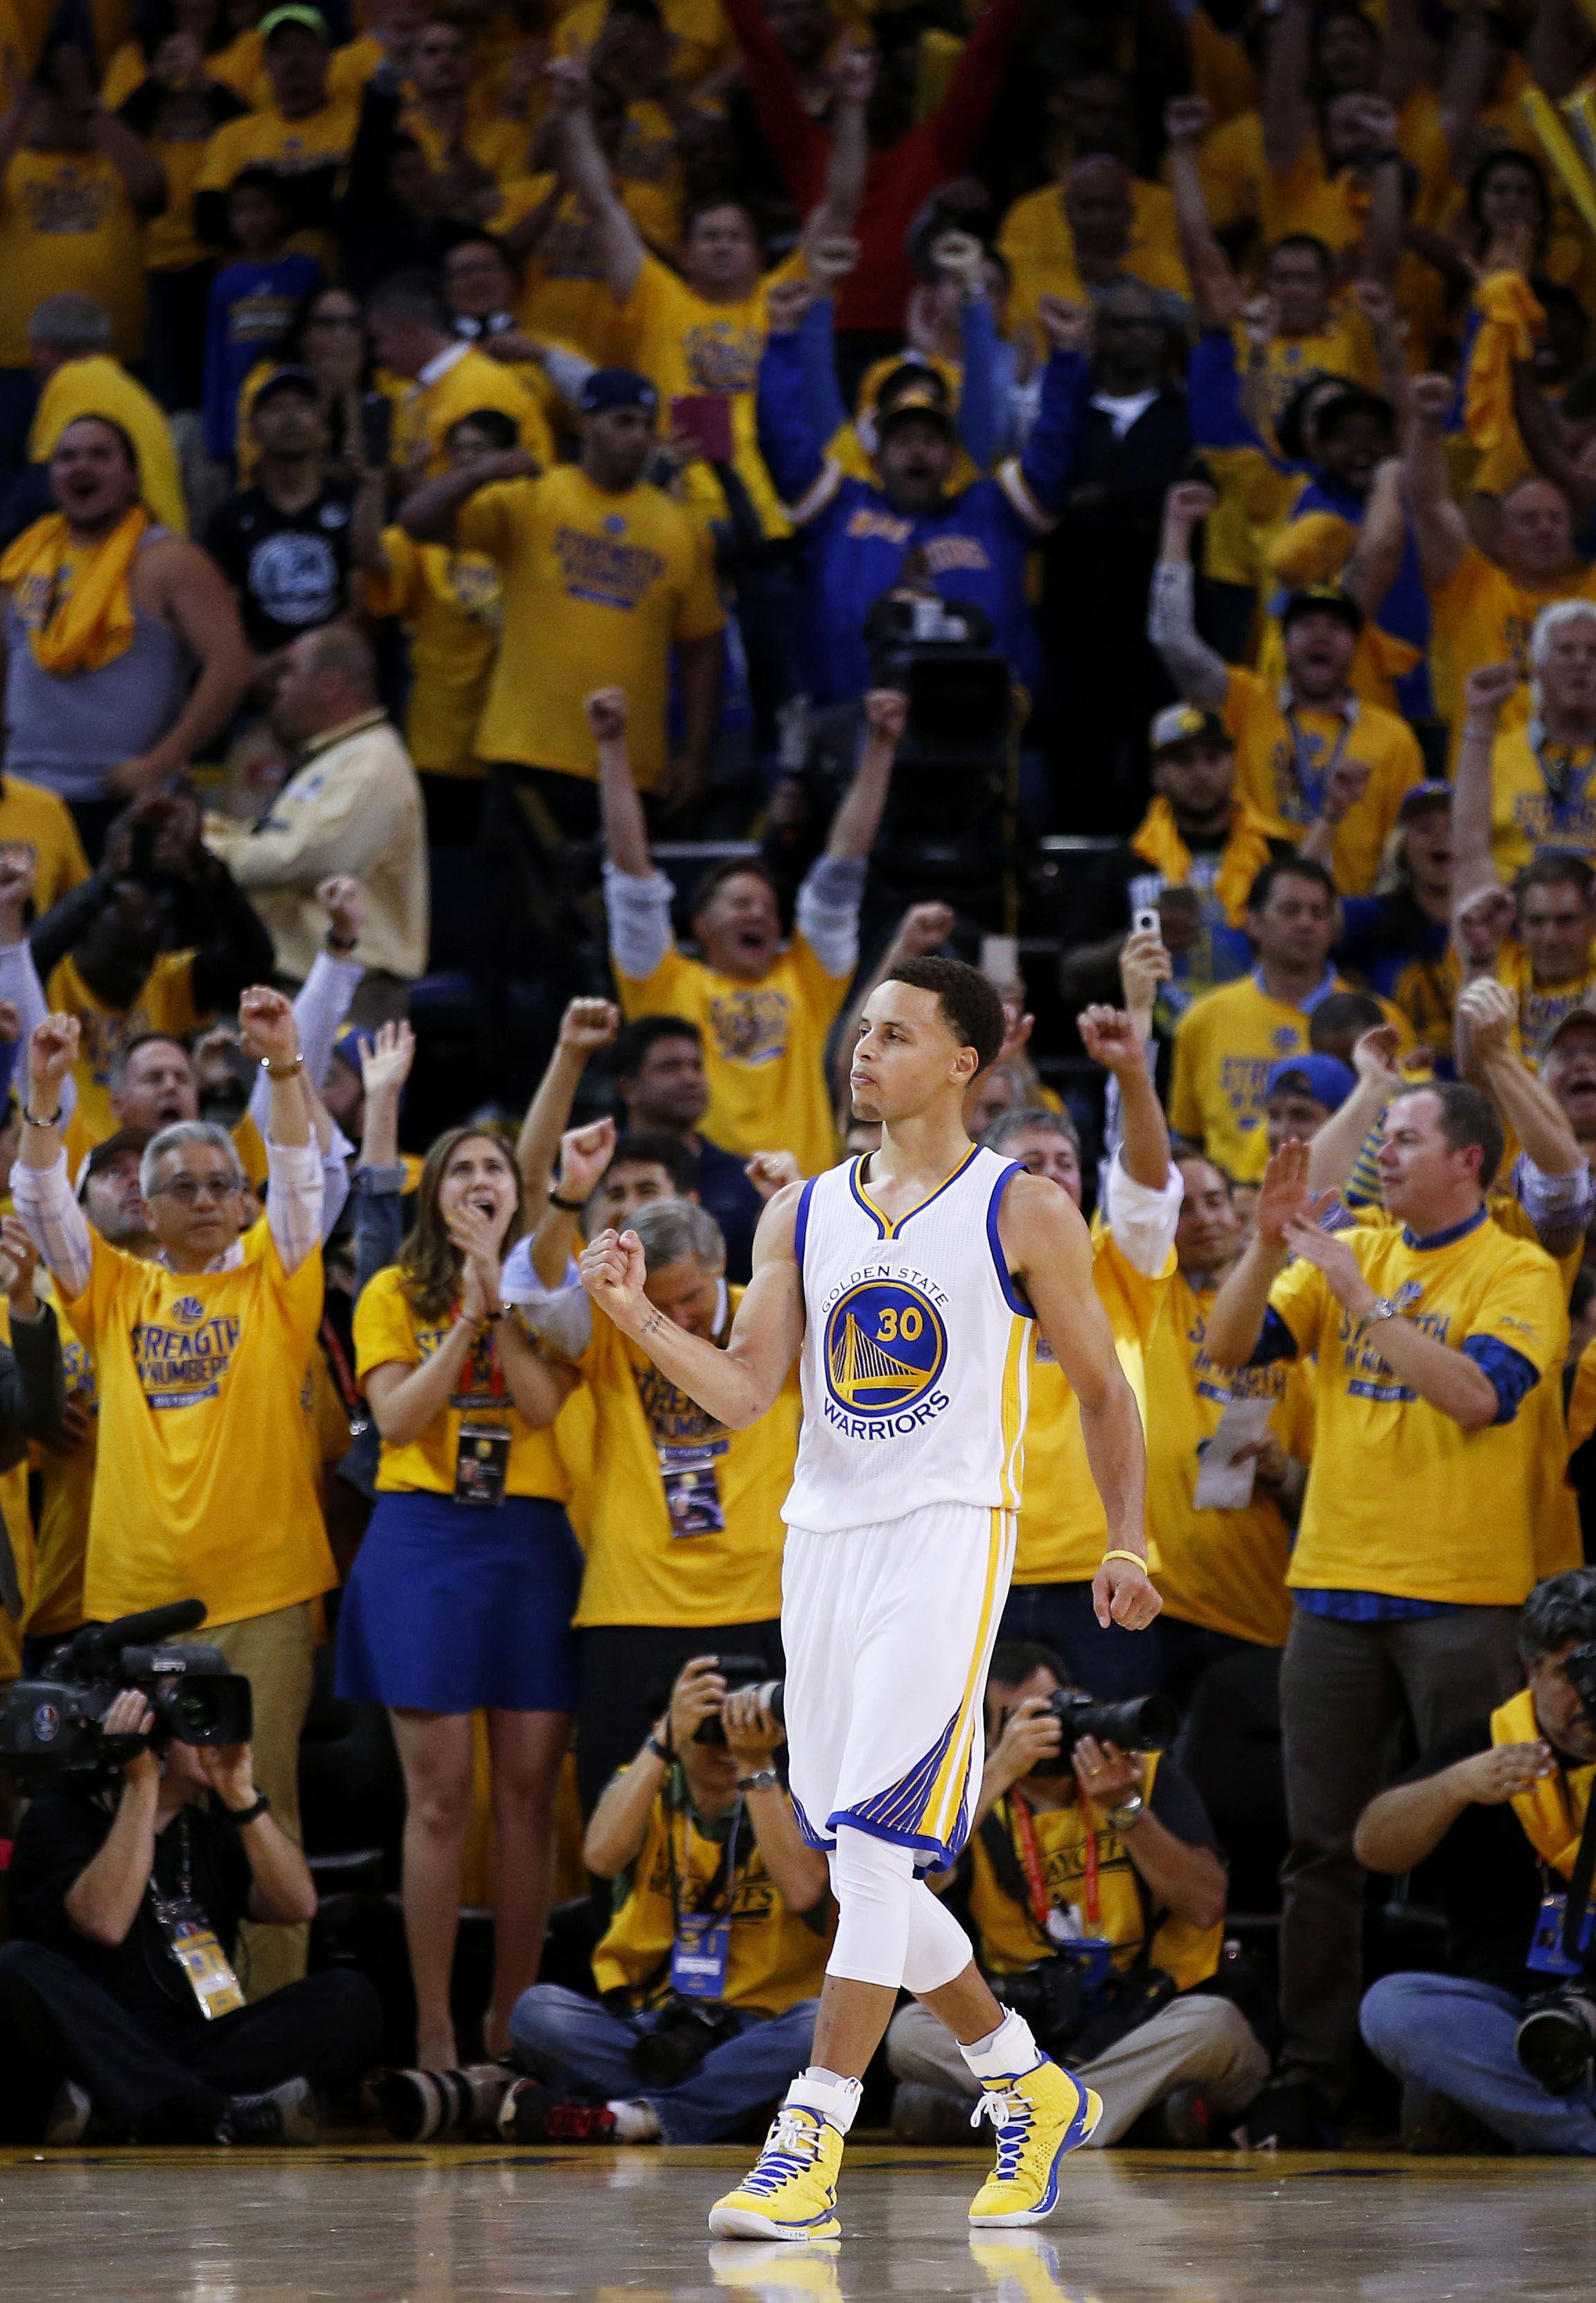 OAKLAND, CA - MAY 19:  Stephen Curry #30 of the Golden State Warriors celebrates their 110 to 106 win over the Houston Rockets during Game One of the Western Conference Finals of the 2015 NBA Playoffs at ORACLE Arena on May 19, 2015 in Oakland, California